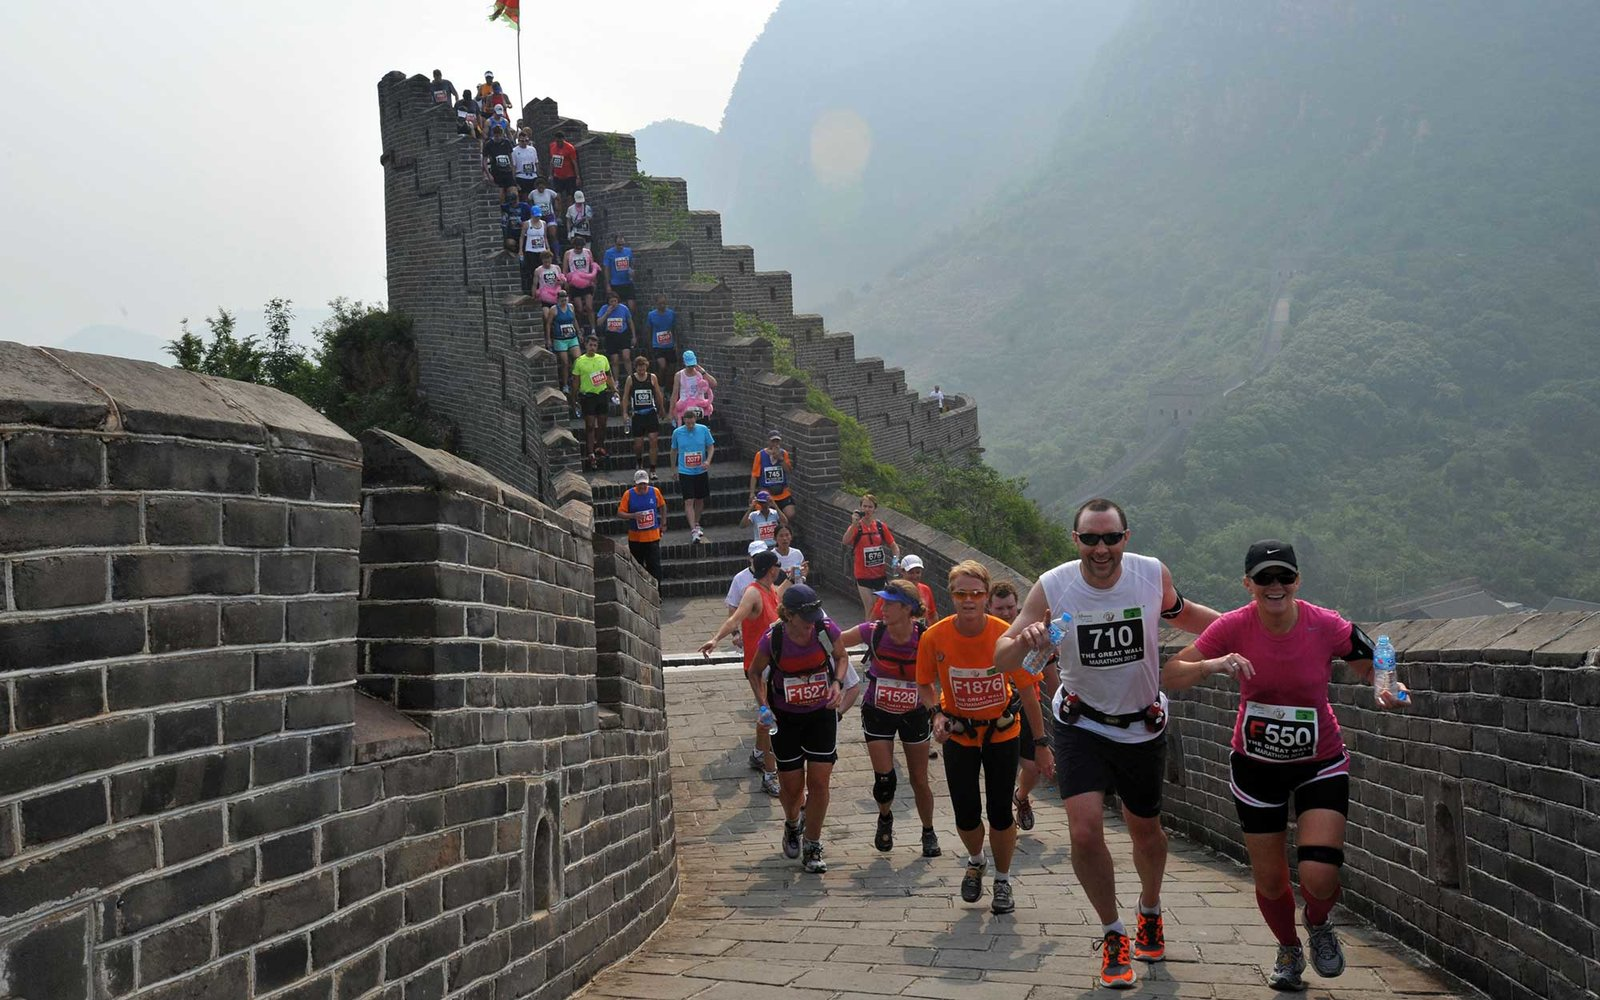 Runners compete in the Great Wall marathon at Huangyaguan (Yellow Cliff Pass) Great Wall of China in Tianjin on May 19, 2012.  The annual race attracts more than 1,600 athletes from 49 countries and is regarded as one of the most challenging marathons in